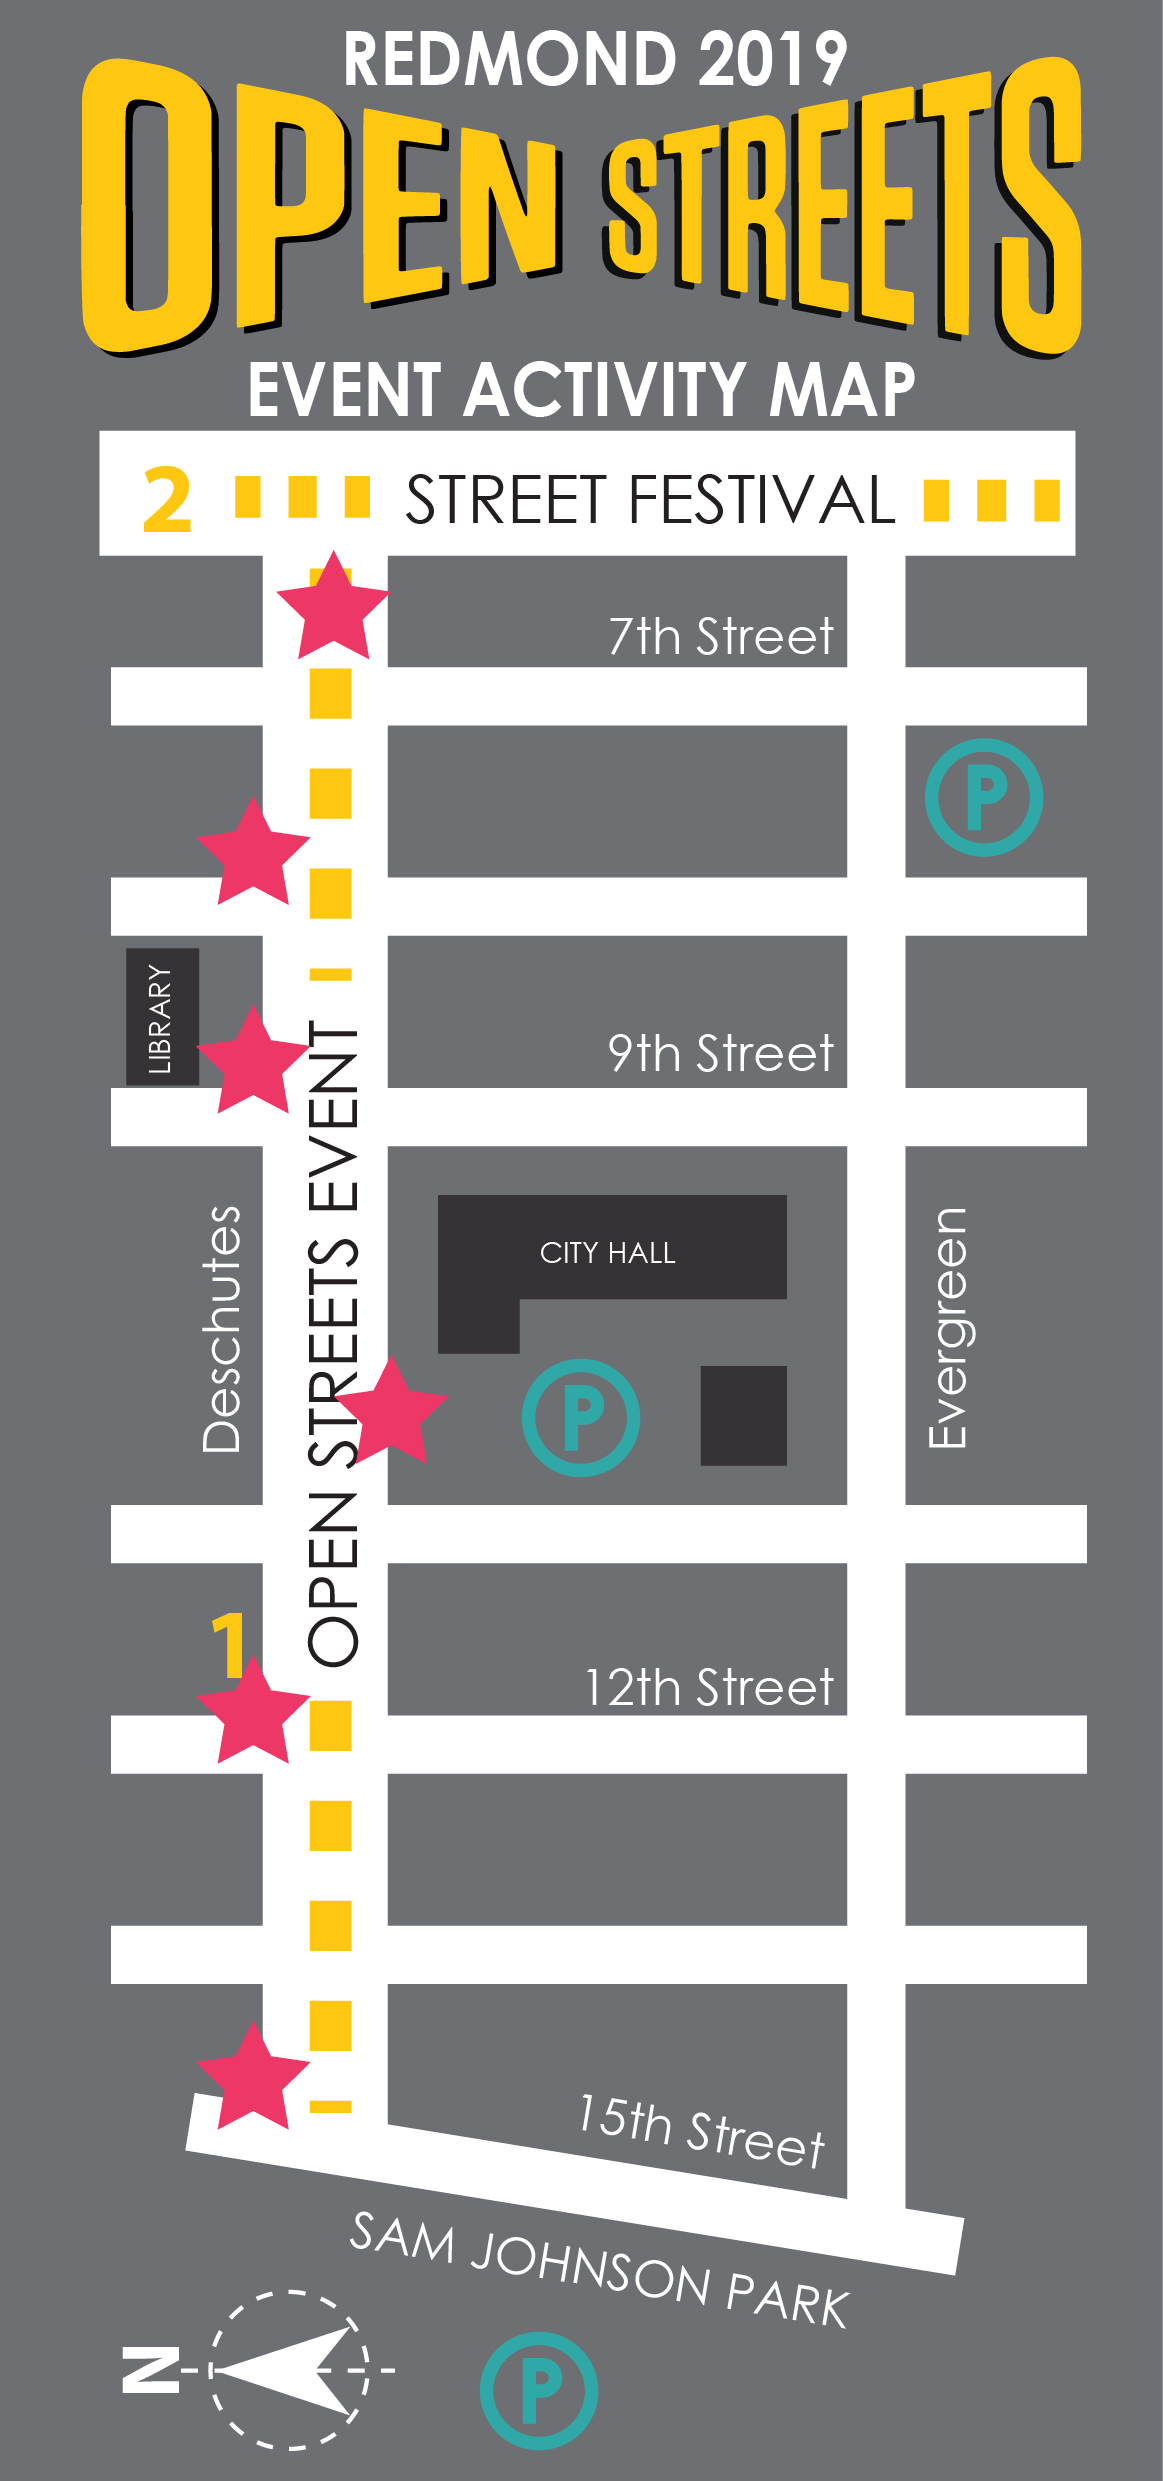 Open Streets Event Map 2019